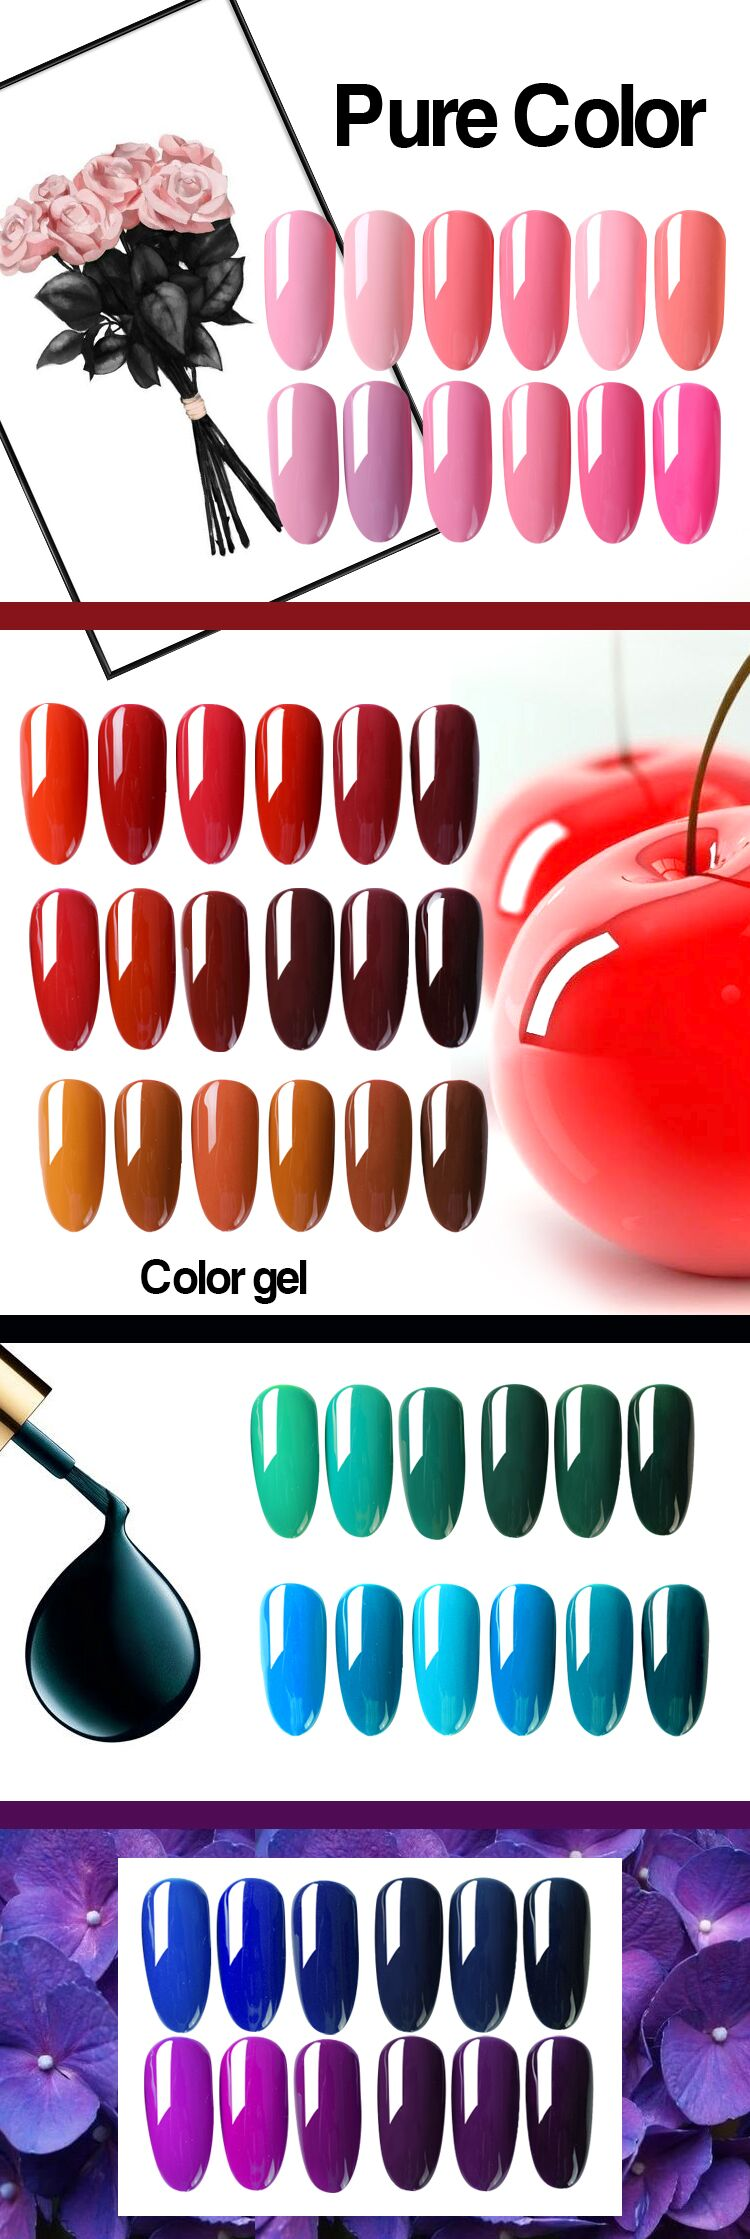 EA 12ml uv gel nail polish color gel for natural nails